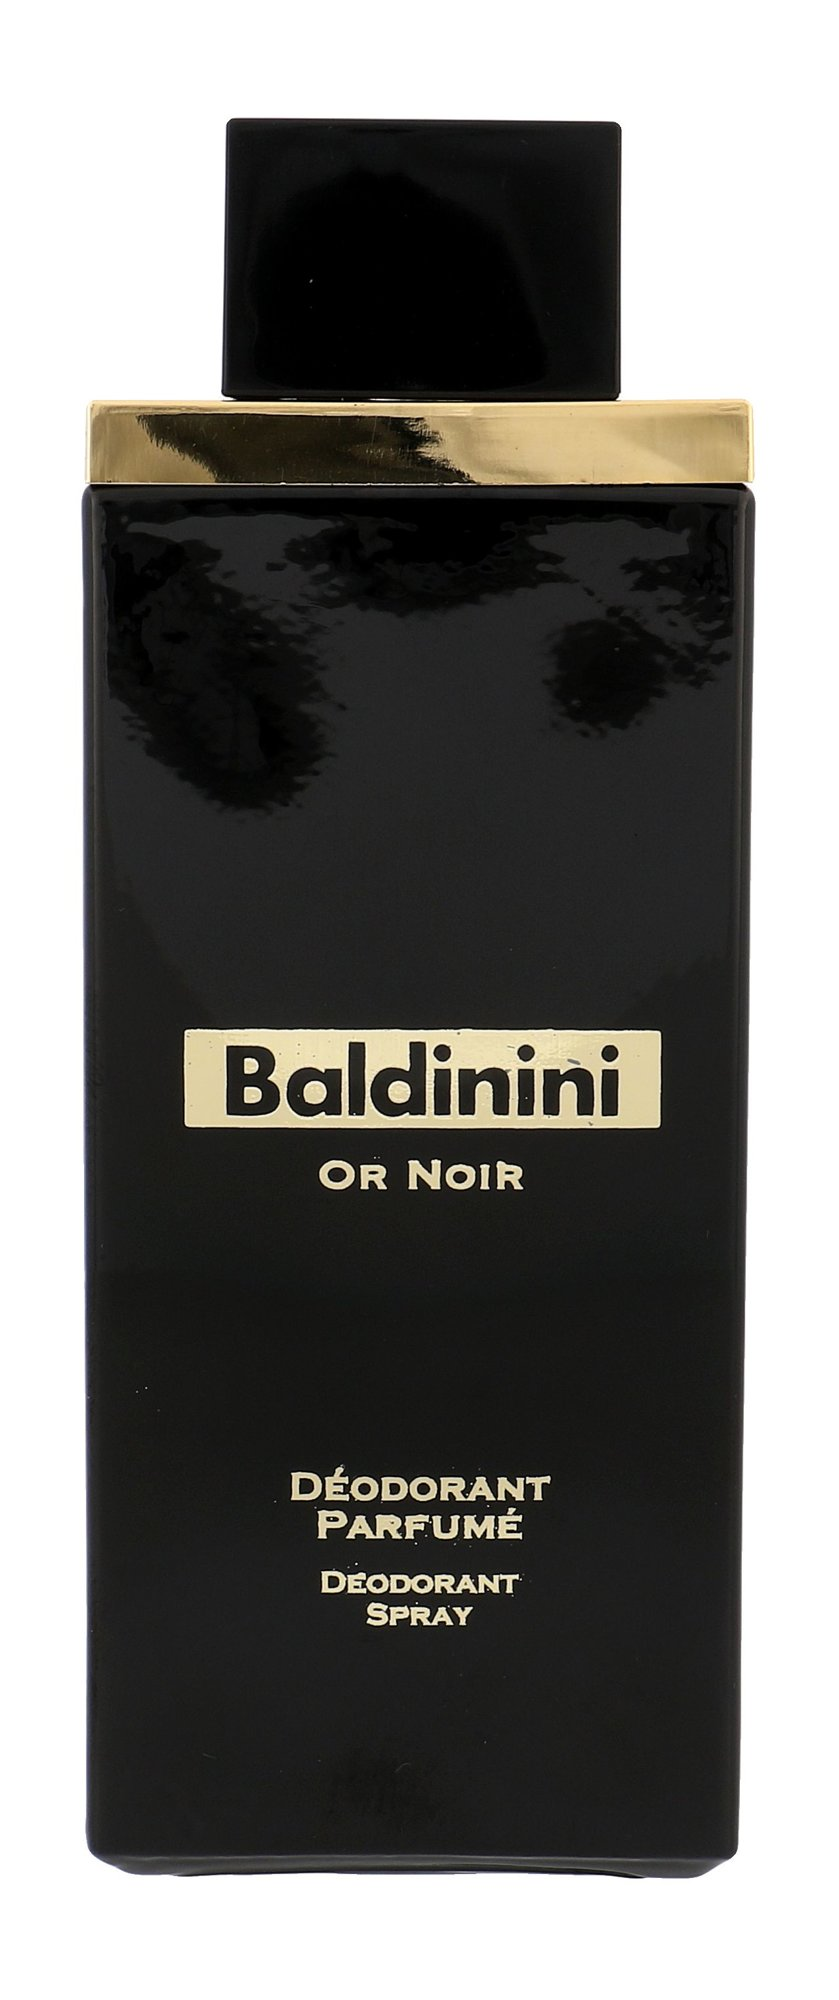 Baldinini Or Noir Deodorant 100ml